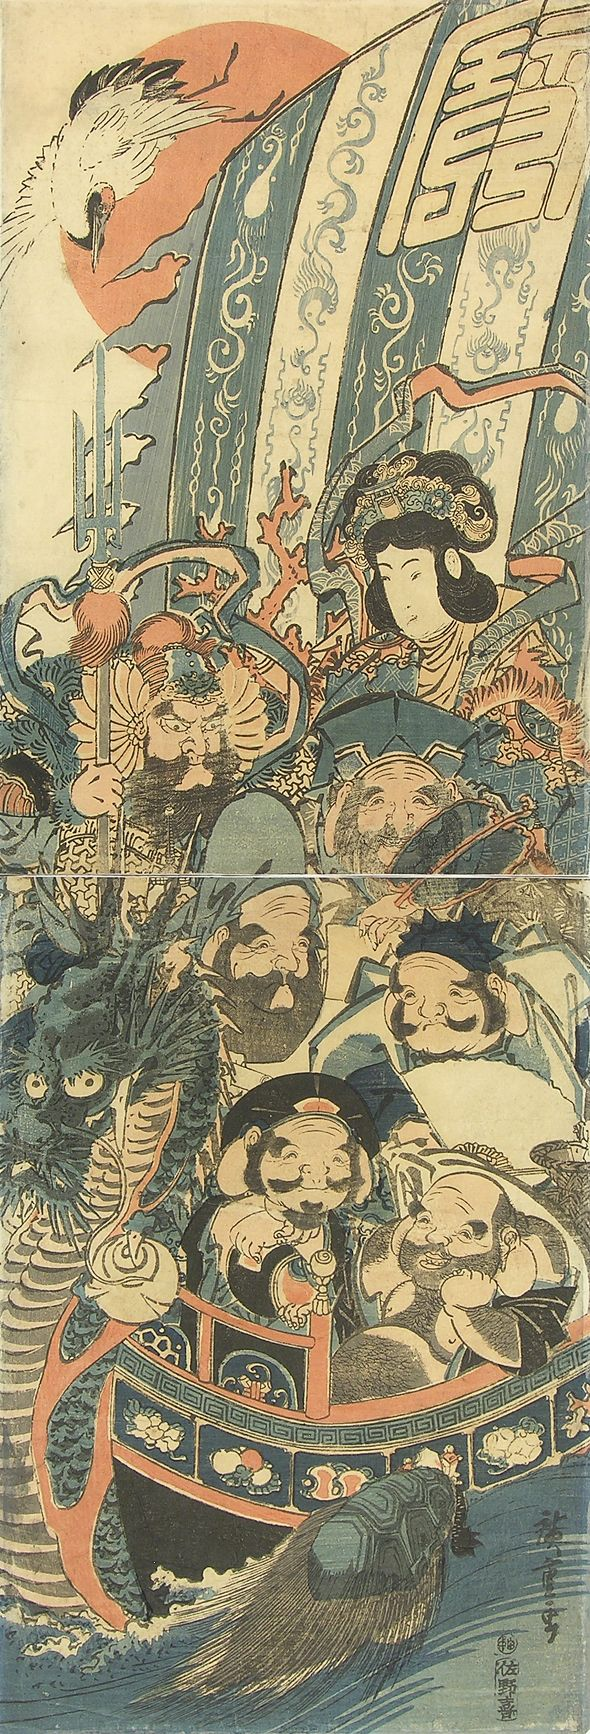 HIROSHIGE (1797-1858) Seven Gods of Good Fortune on Their Treasure Ship Signed: Hiroshige fude Publisher: Sanoki circa mid 1840s kakemono-e (vertical diptych)